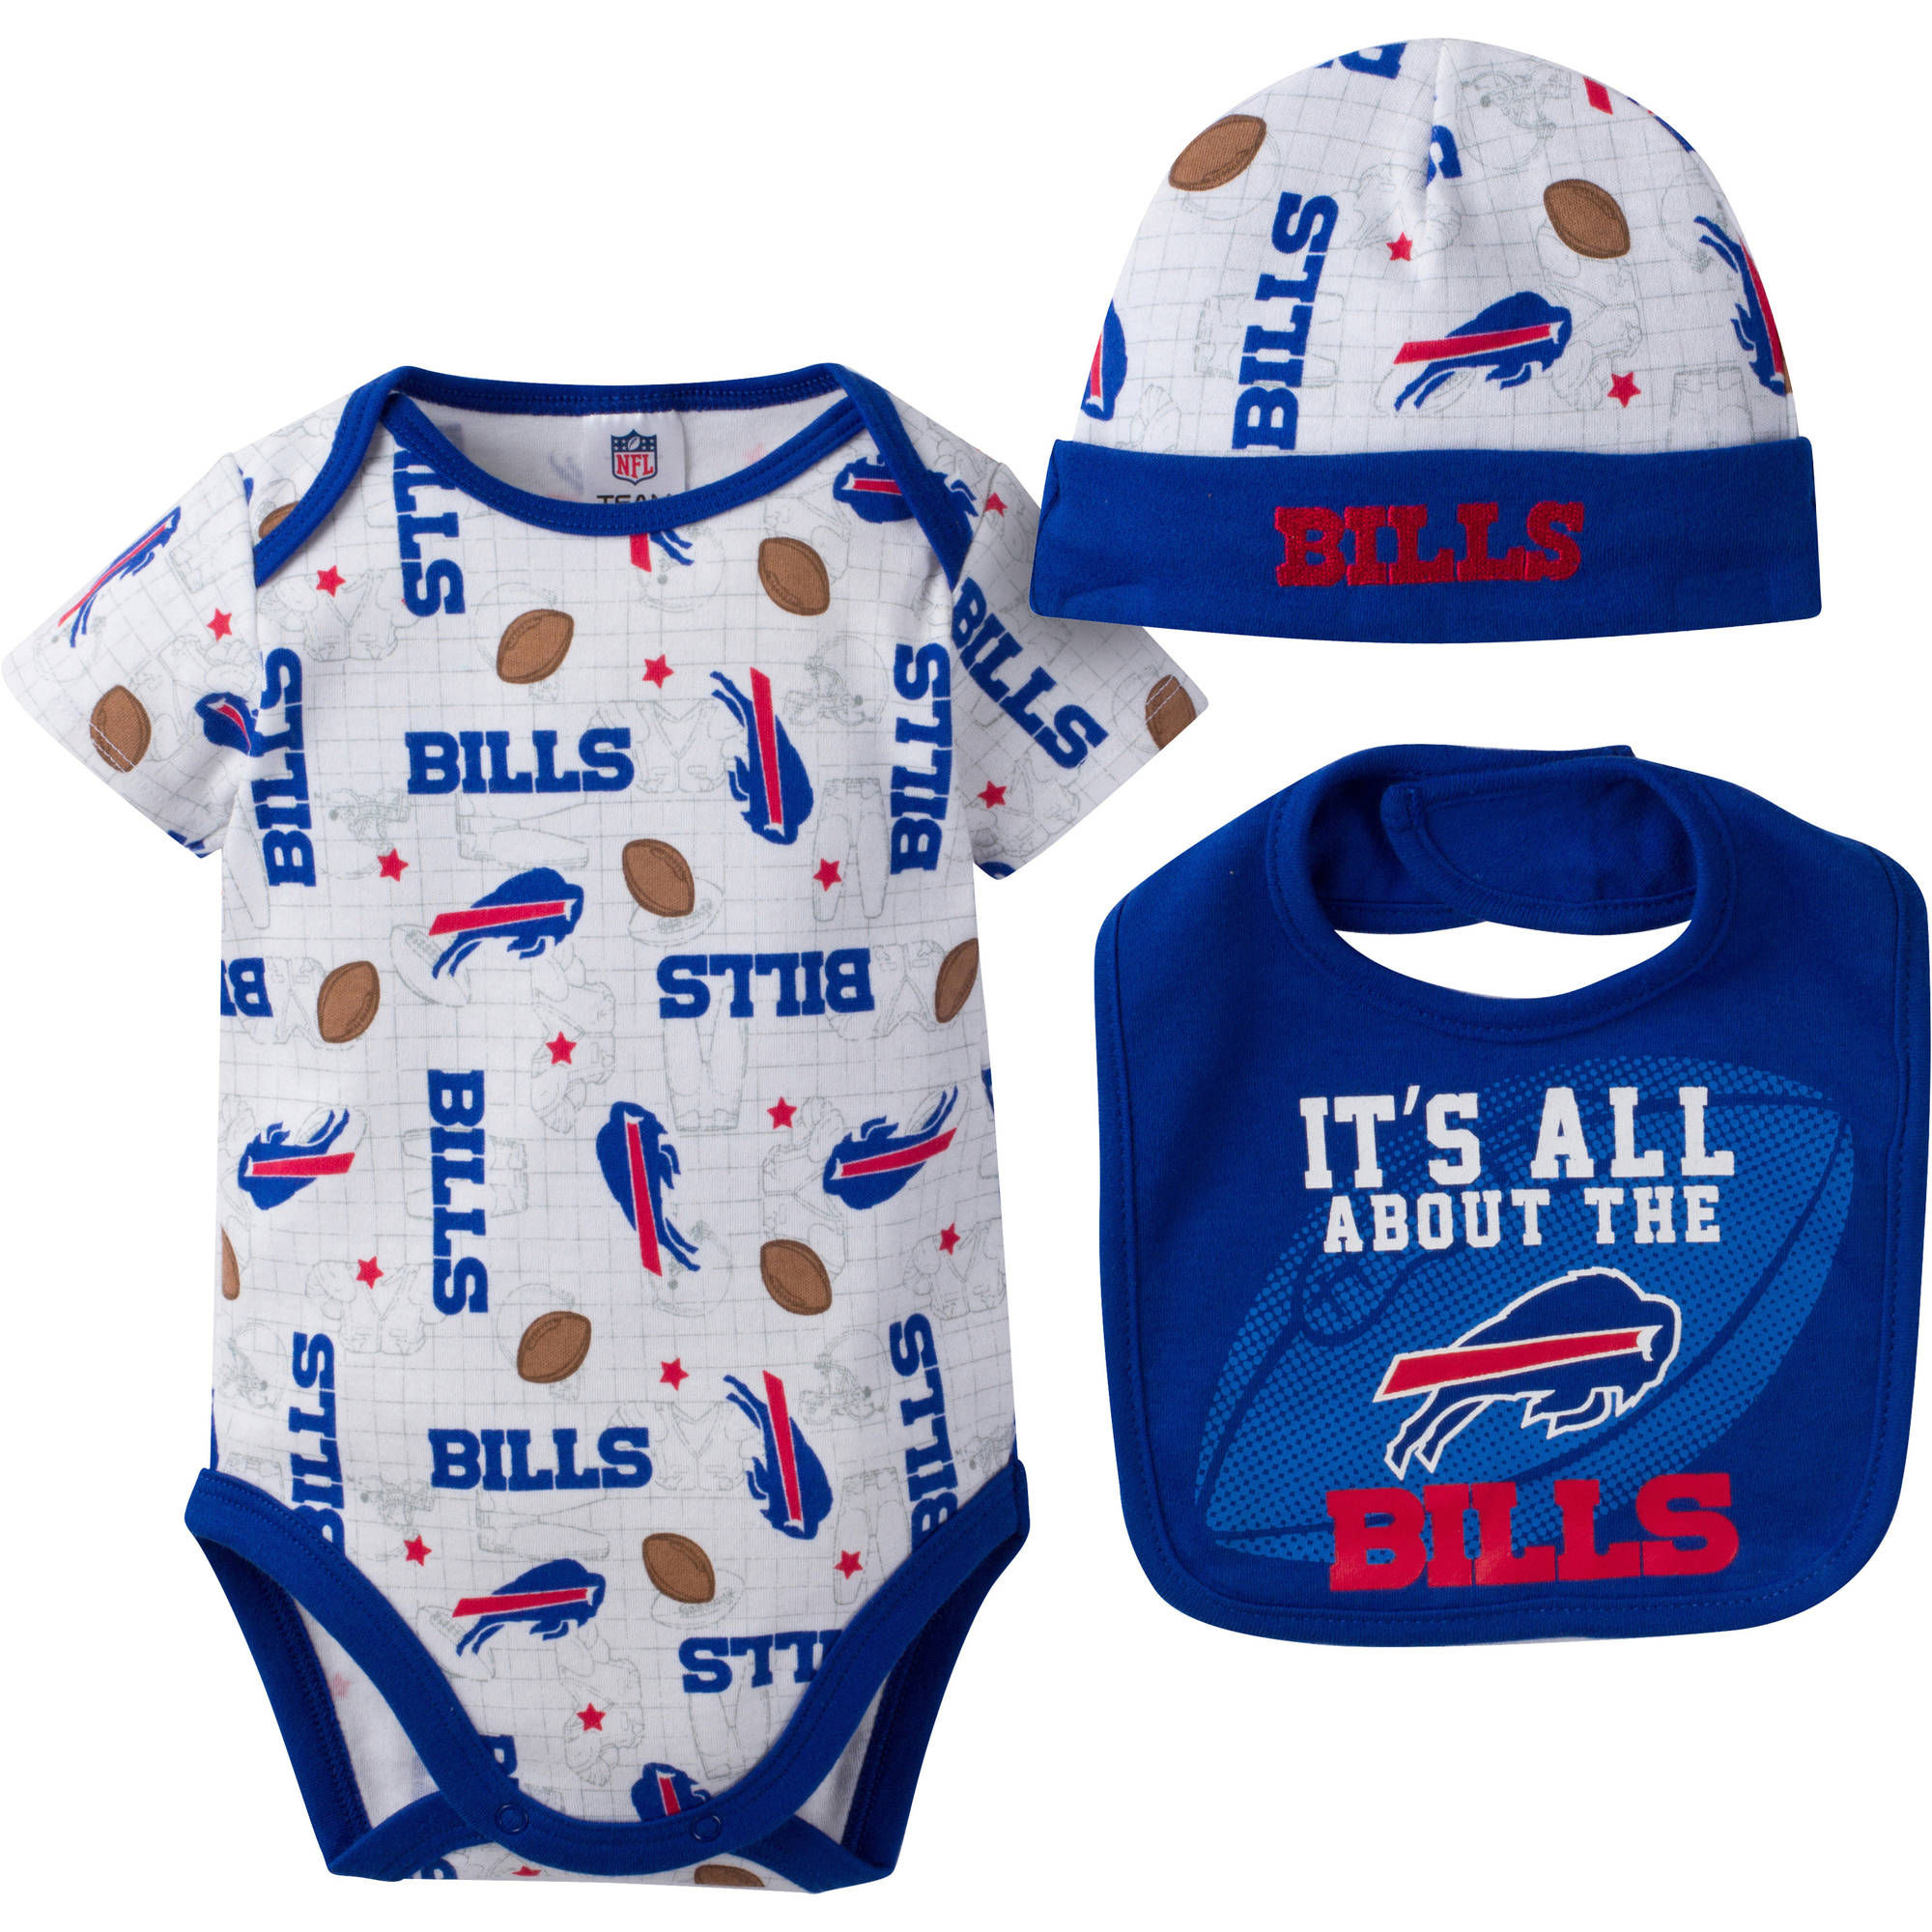 NFL Buffalo Bills Baby Boys Bodysuit, Bib and Cap Outfit Set, 3-Piece